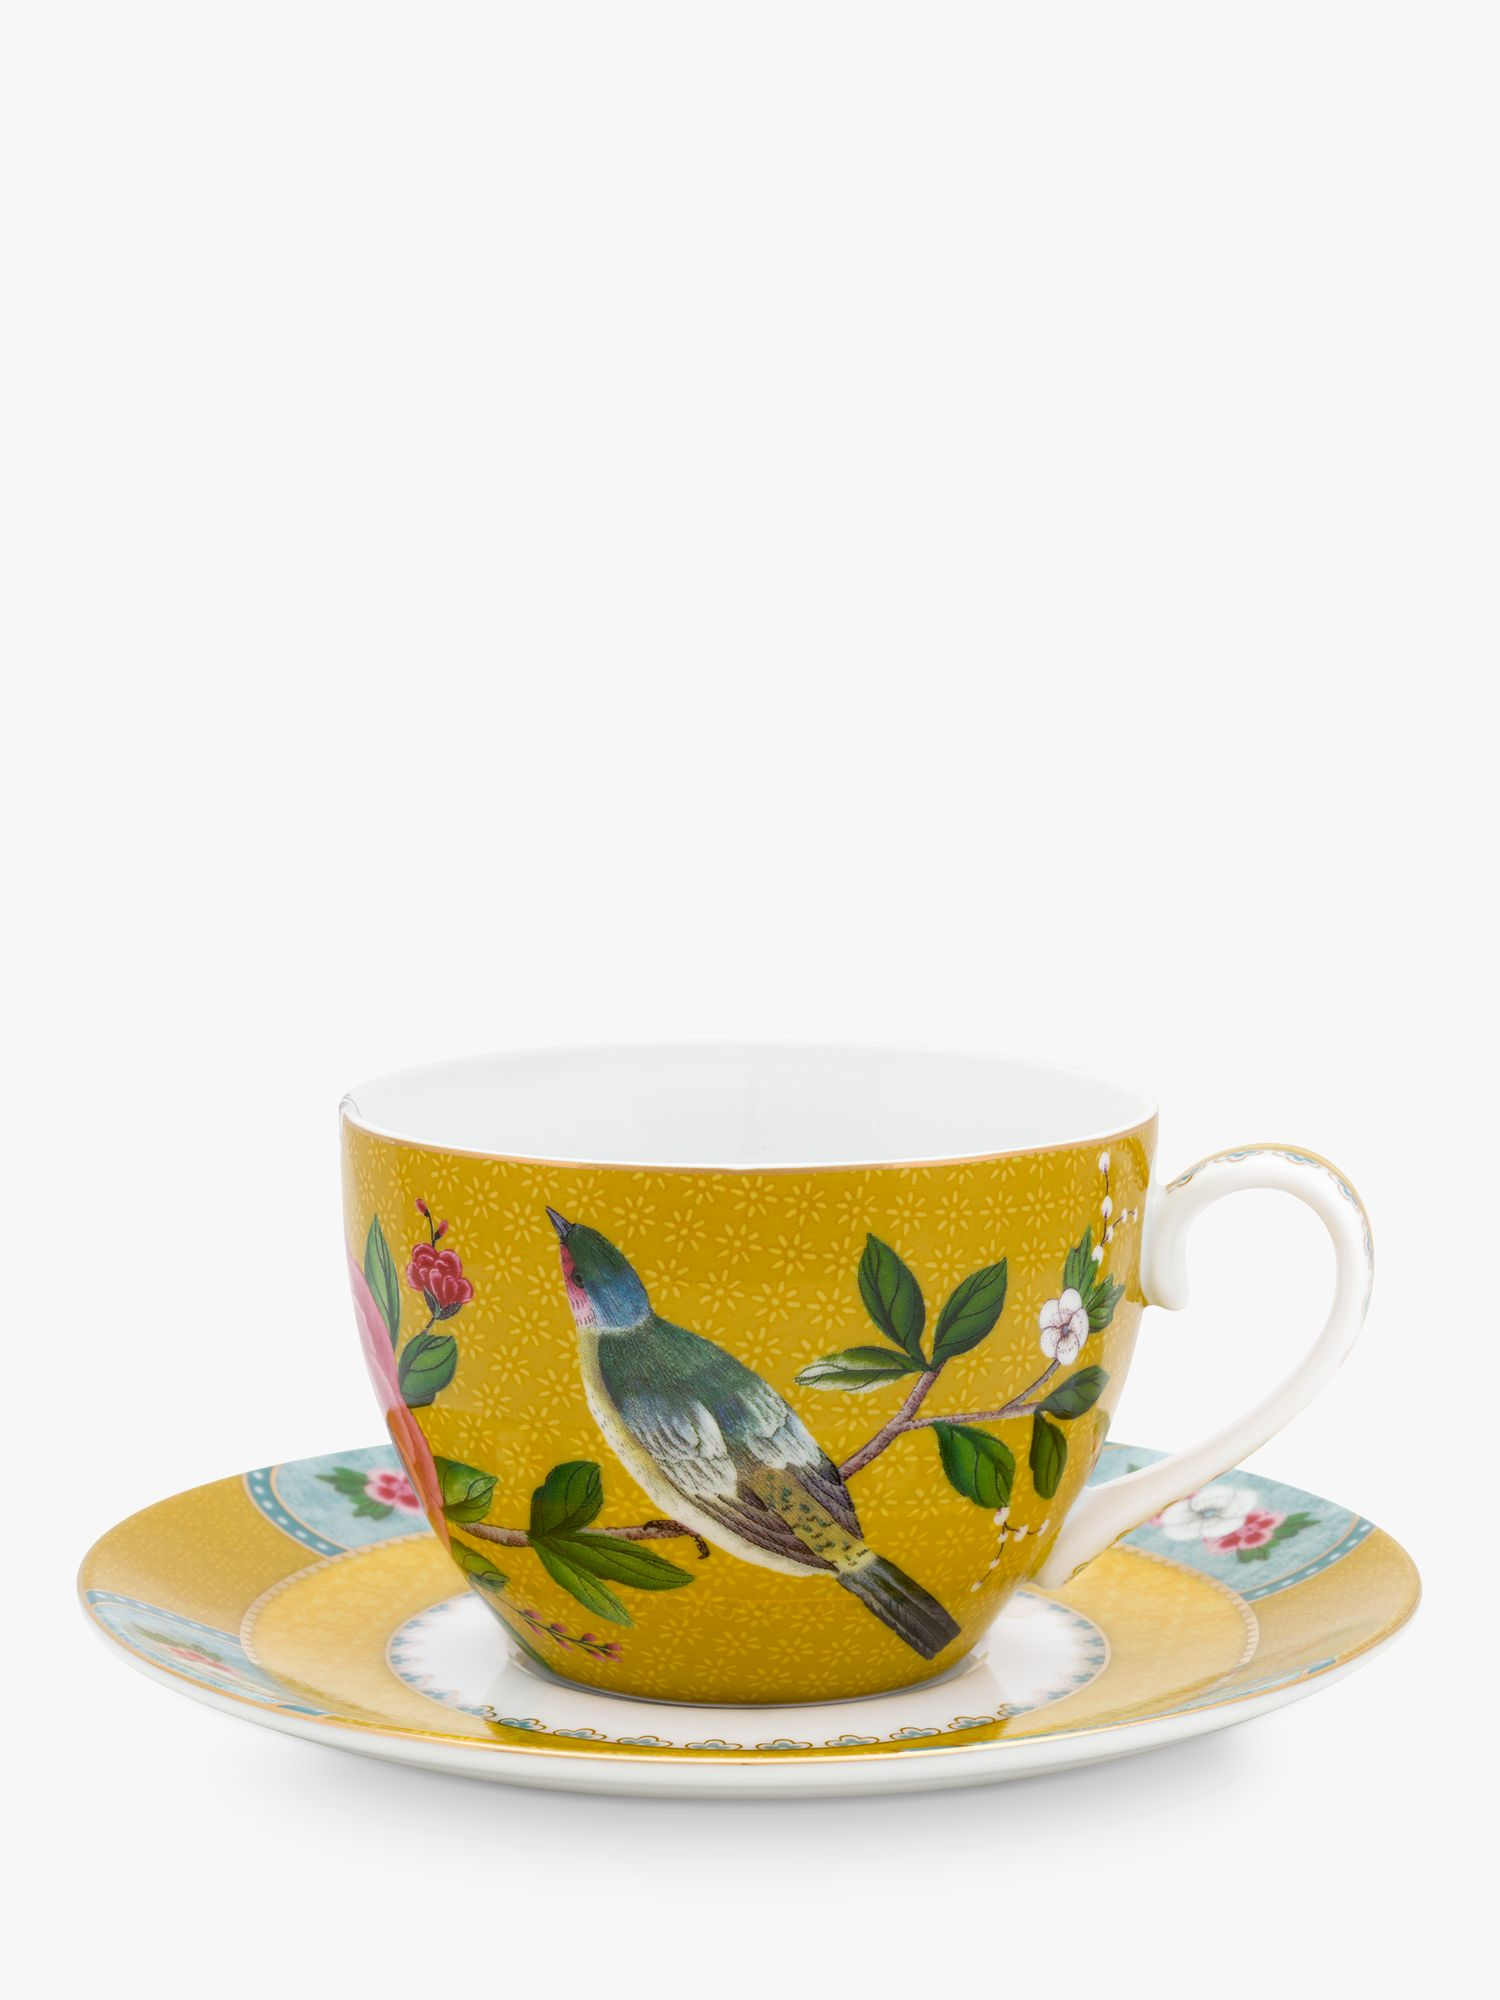 PiP Studio PiP Studio Blushing Birds Cup and Saucer, 280ml, Yellow